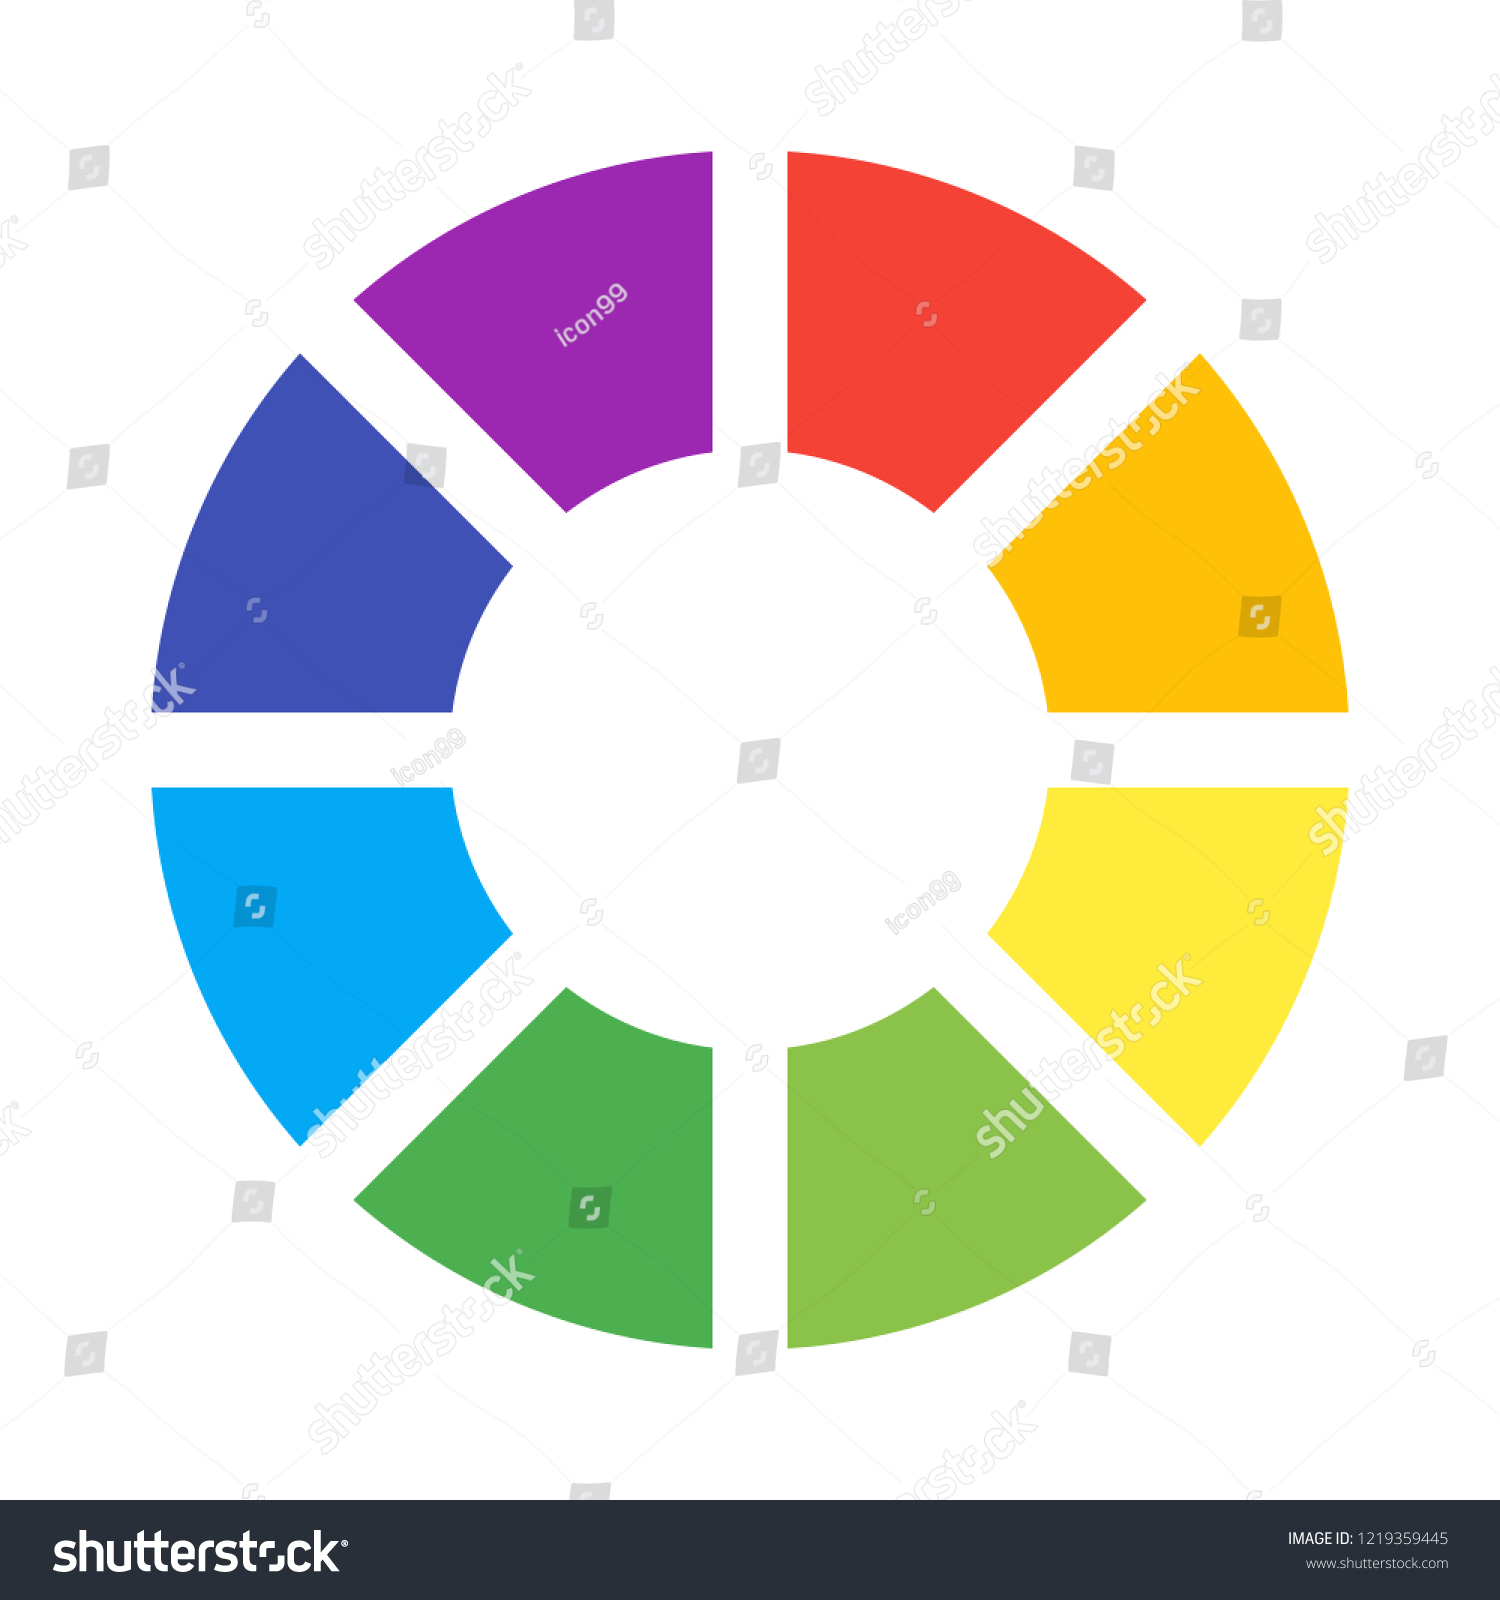 color combinations for diagram bathroom light extractor fan wiring combination chart stock vector royalty free 1219359445